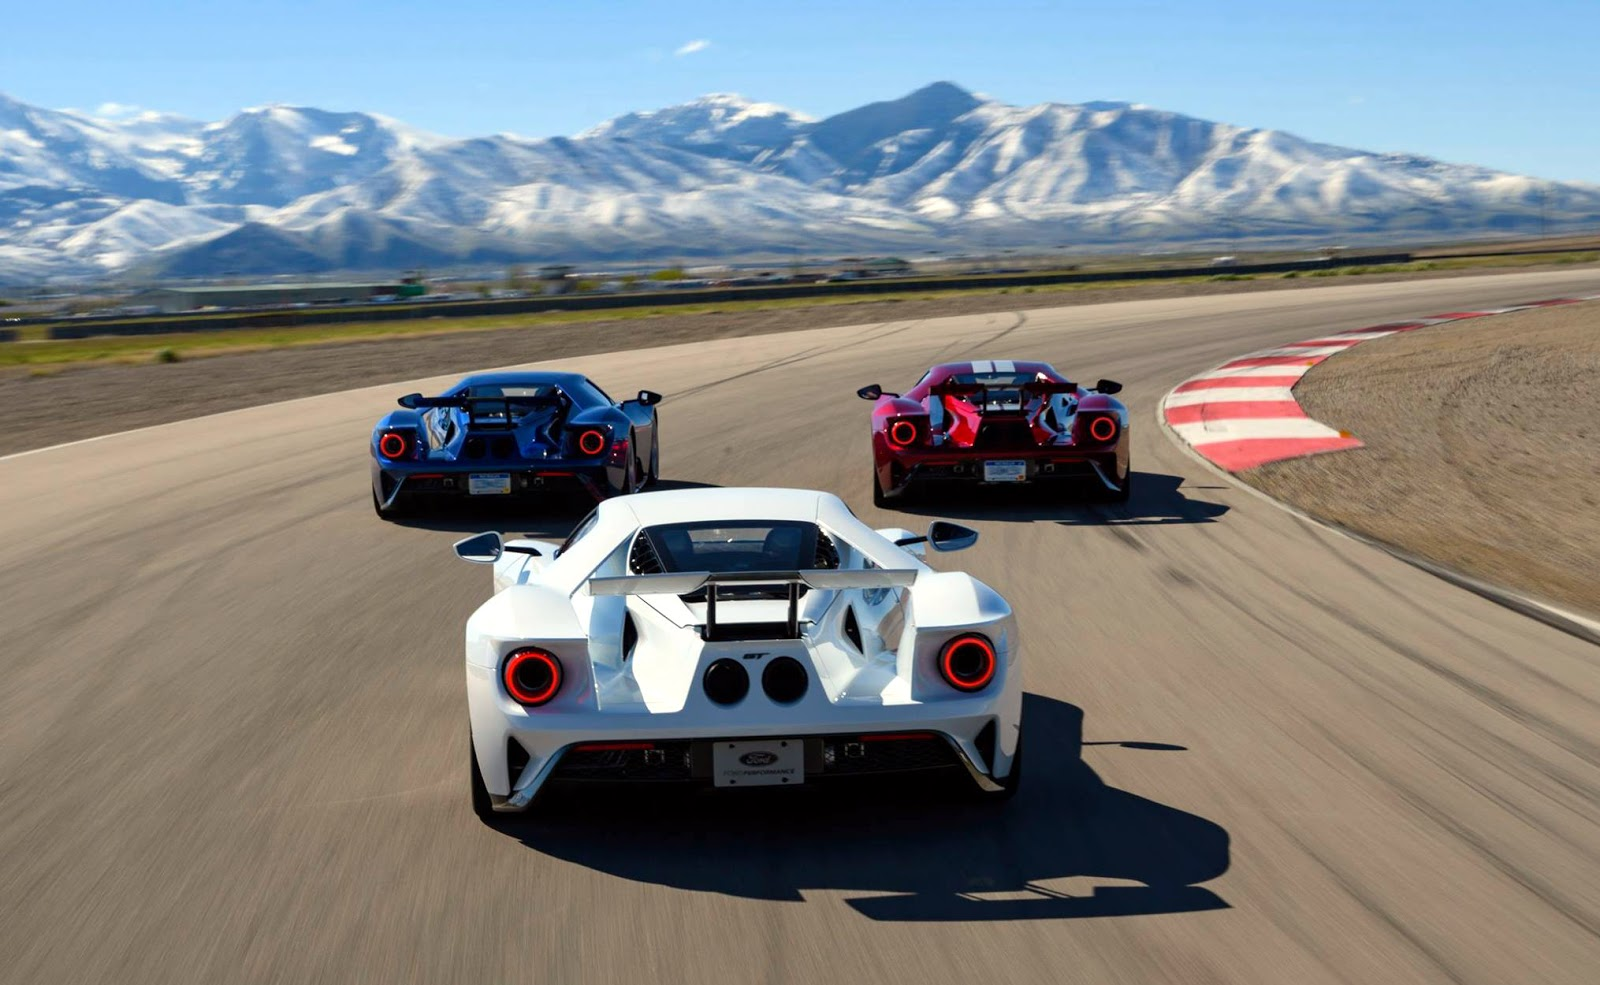 Ford gt drivers joey hand dirk m ller and billy johnson made a pit stop at the ford performance racing school in tooele utah before the imsa and fia wec